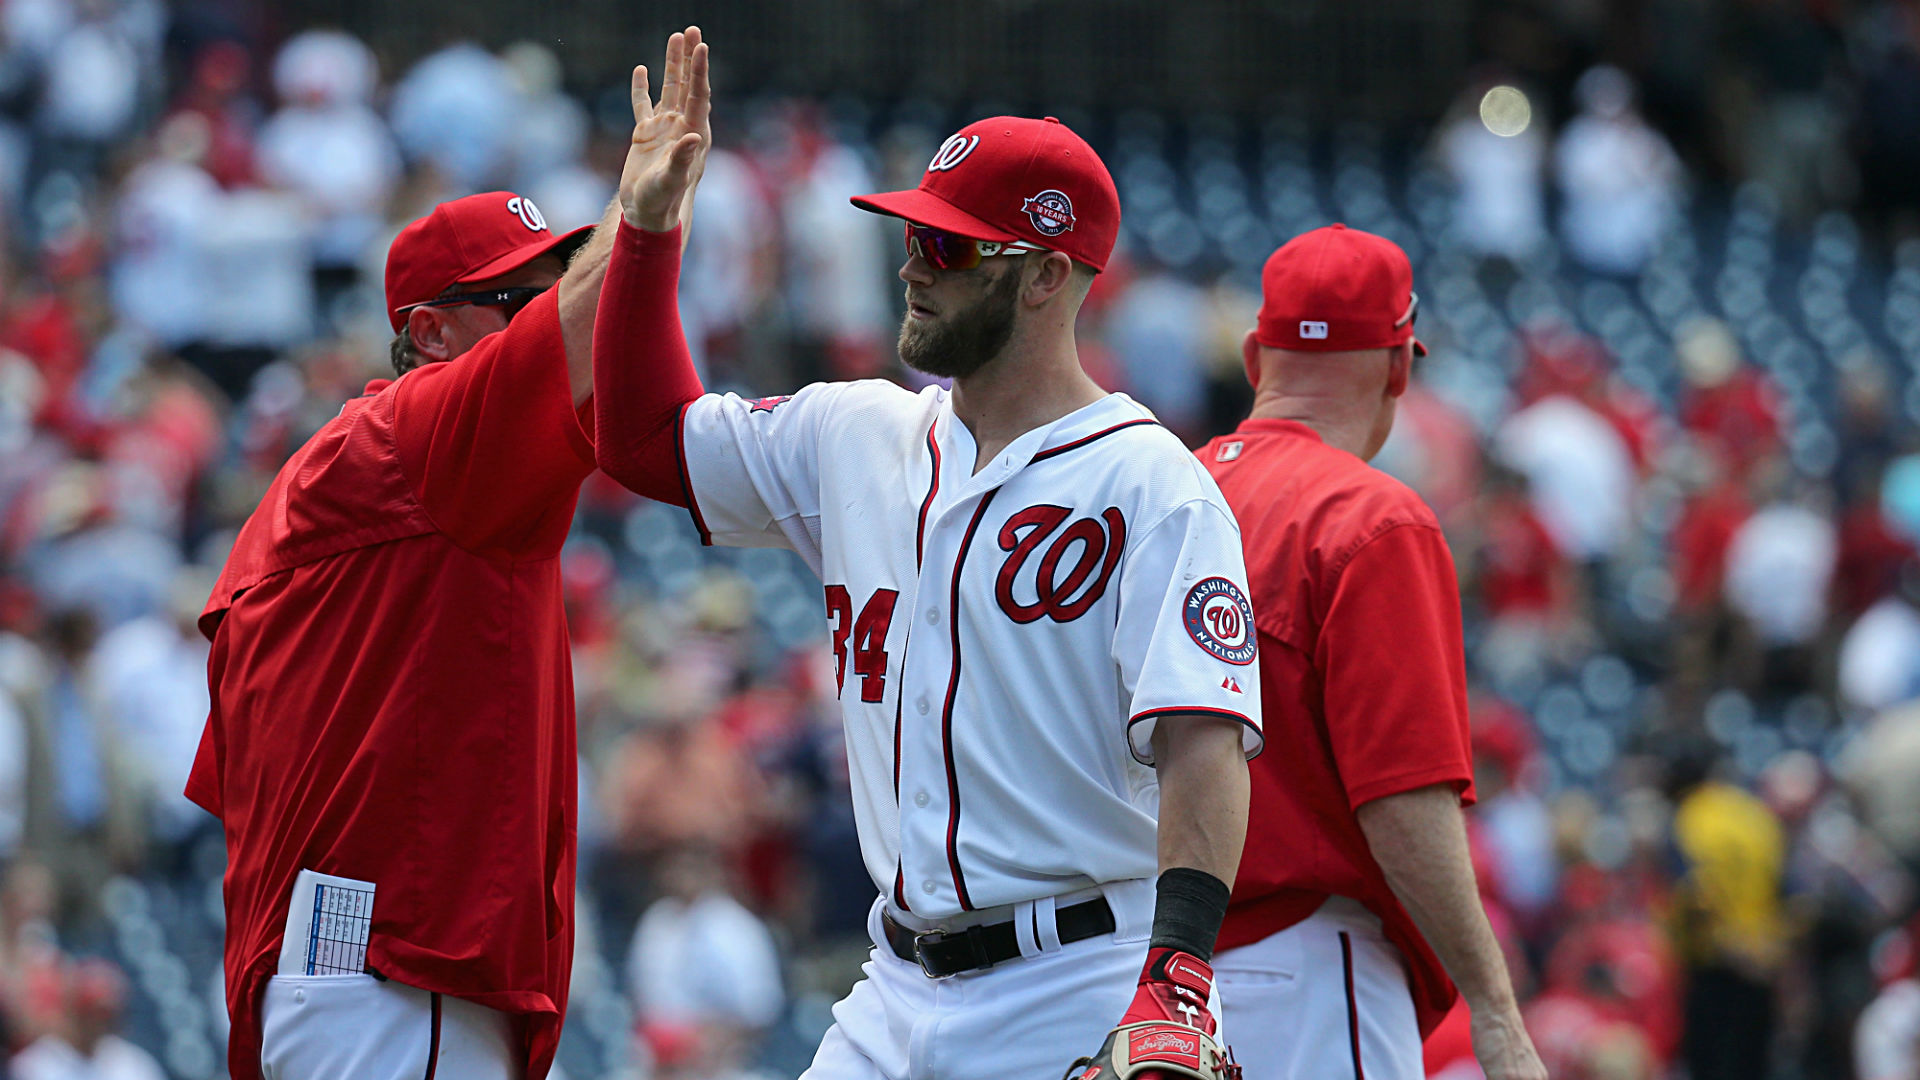 Bryce Harper: 'We're the team to beat, everybody knows that'